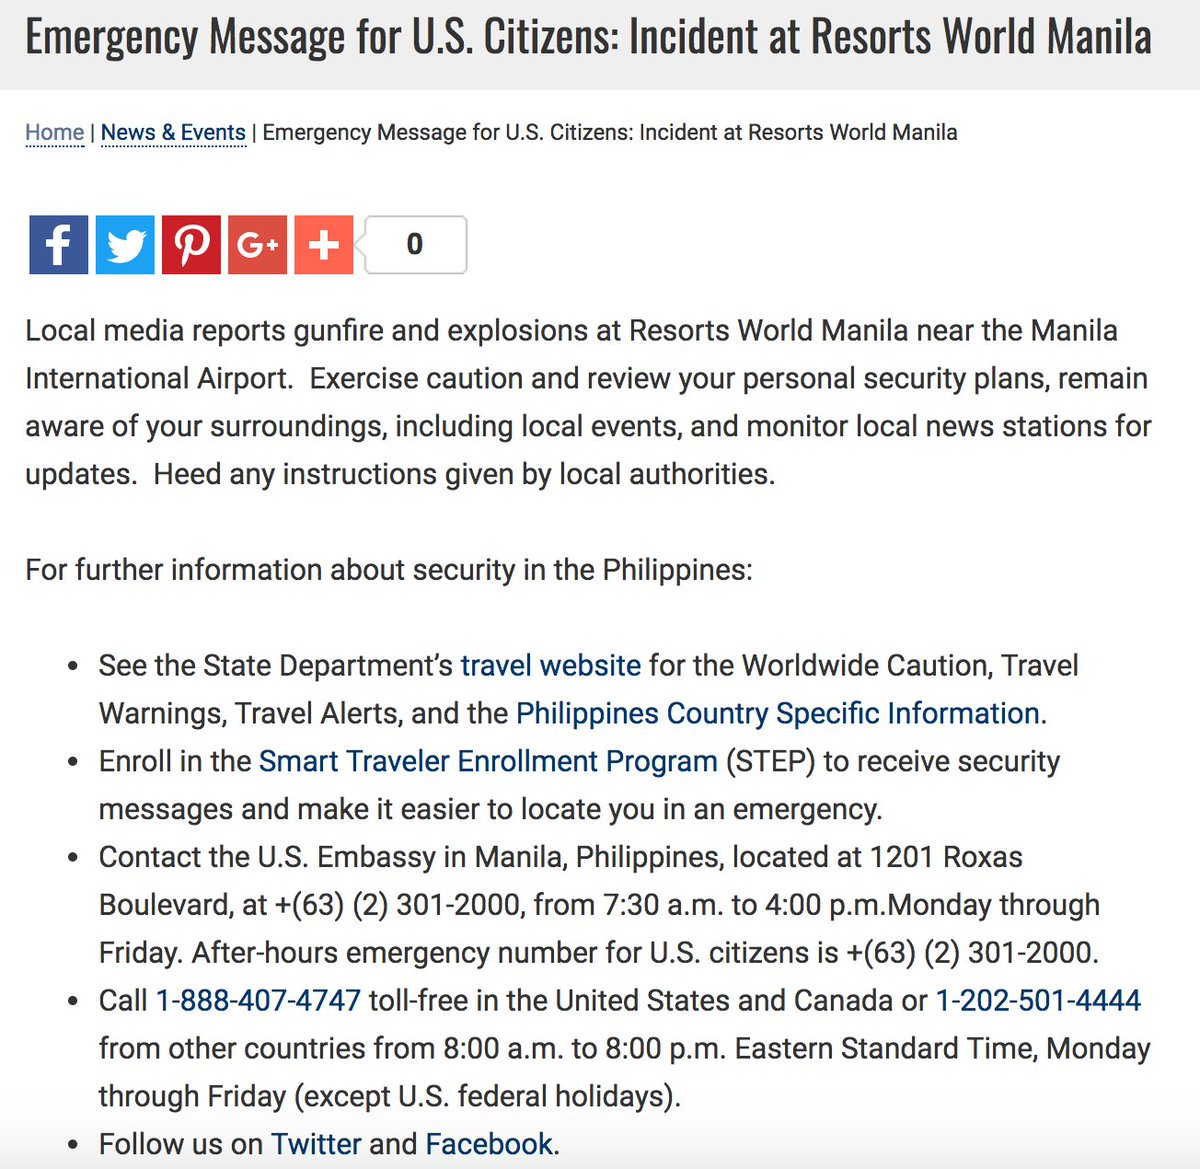 New U S Embassy In The Philippines Issues Emergency Message For U S Citizens On Incident At Resorts World Manila Exercise Caution Scoopnest Com